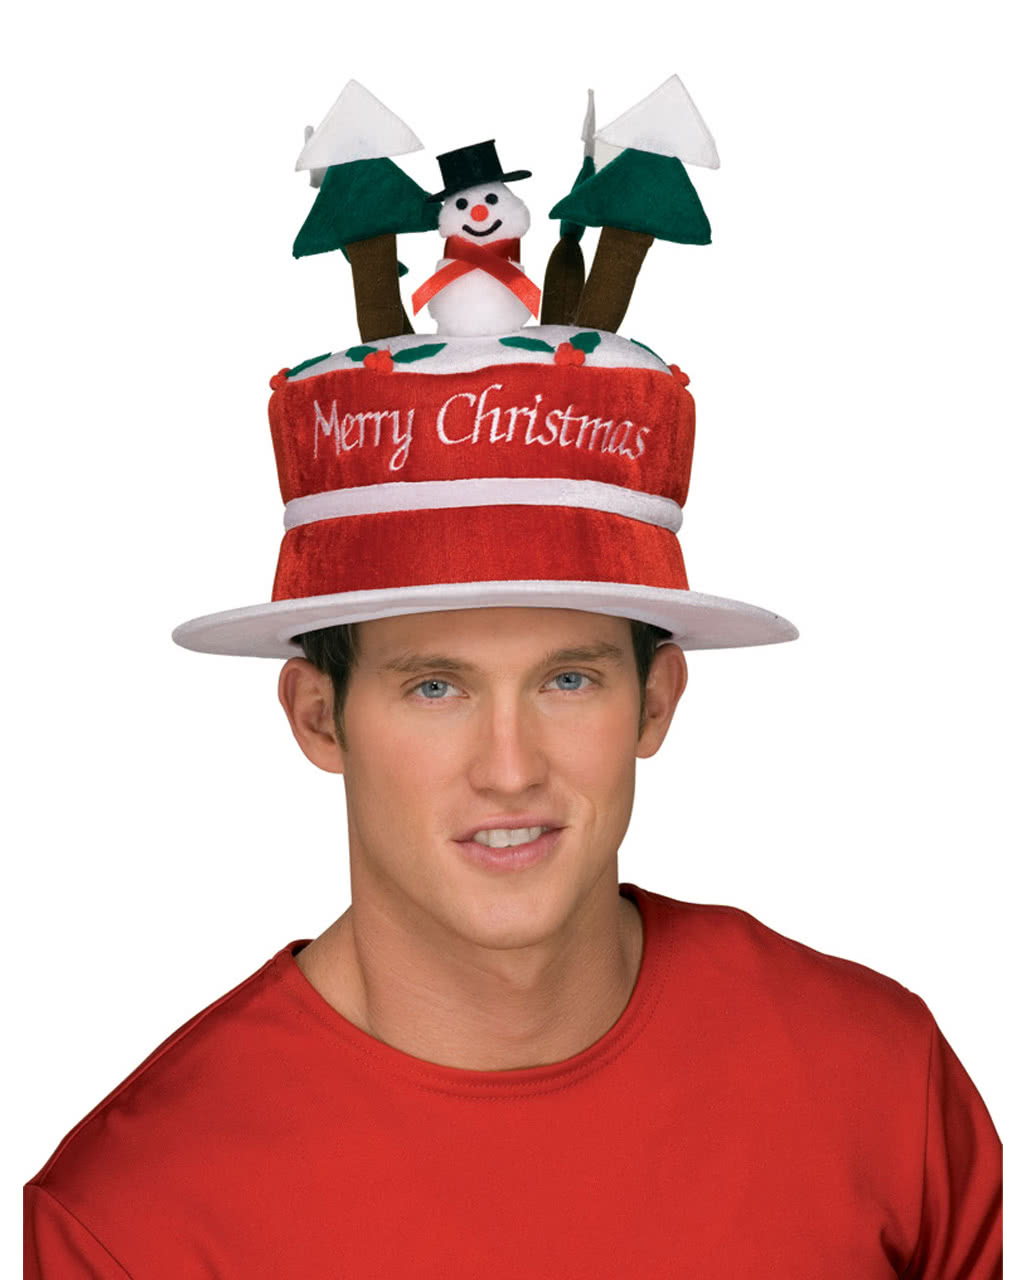 ade8bf54cad Christmas hat with snowman For the Christmas party